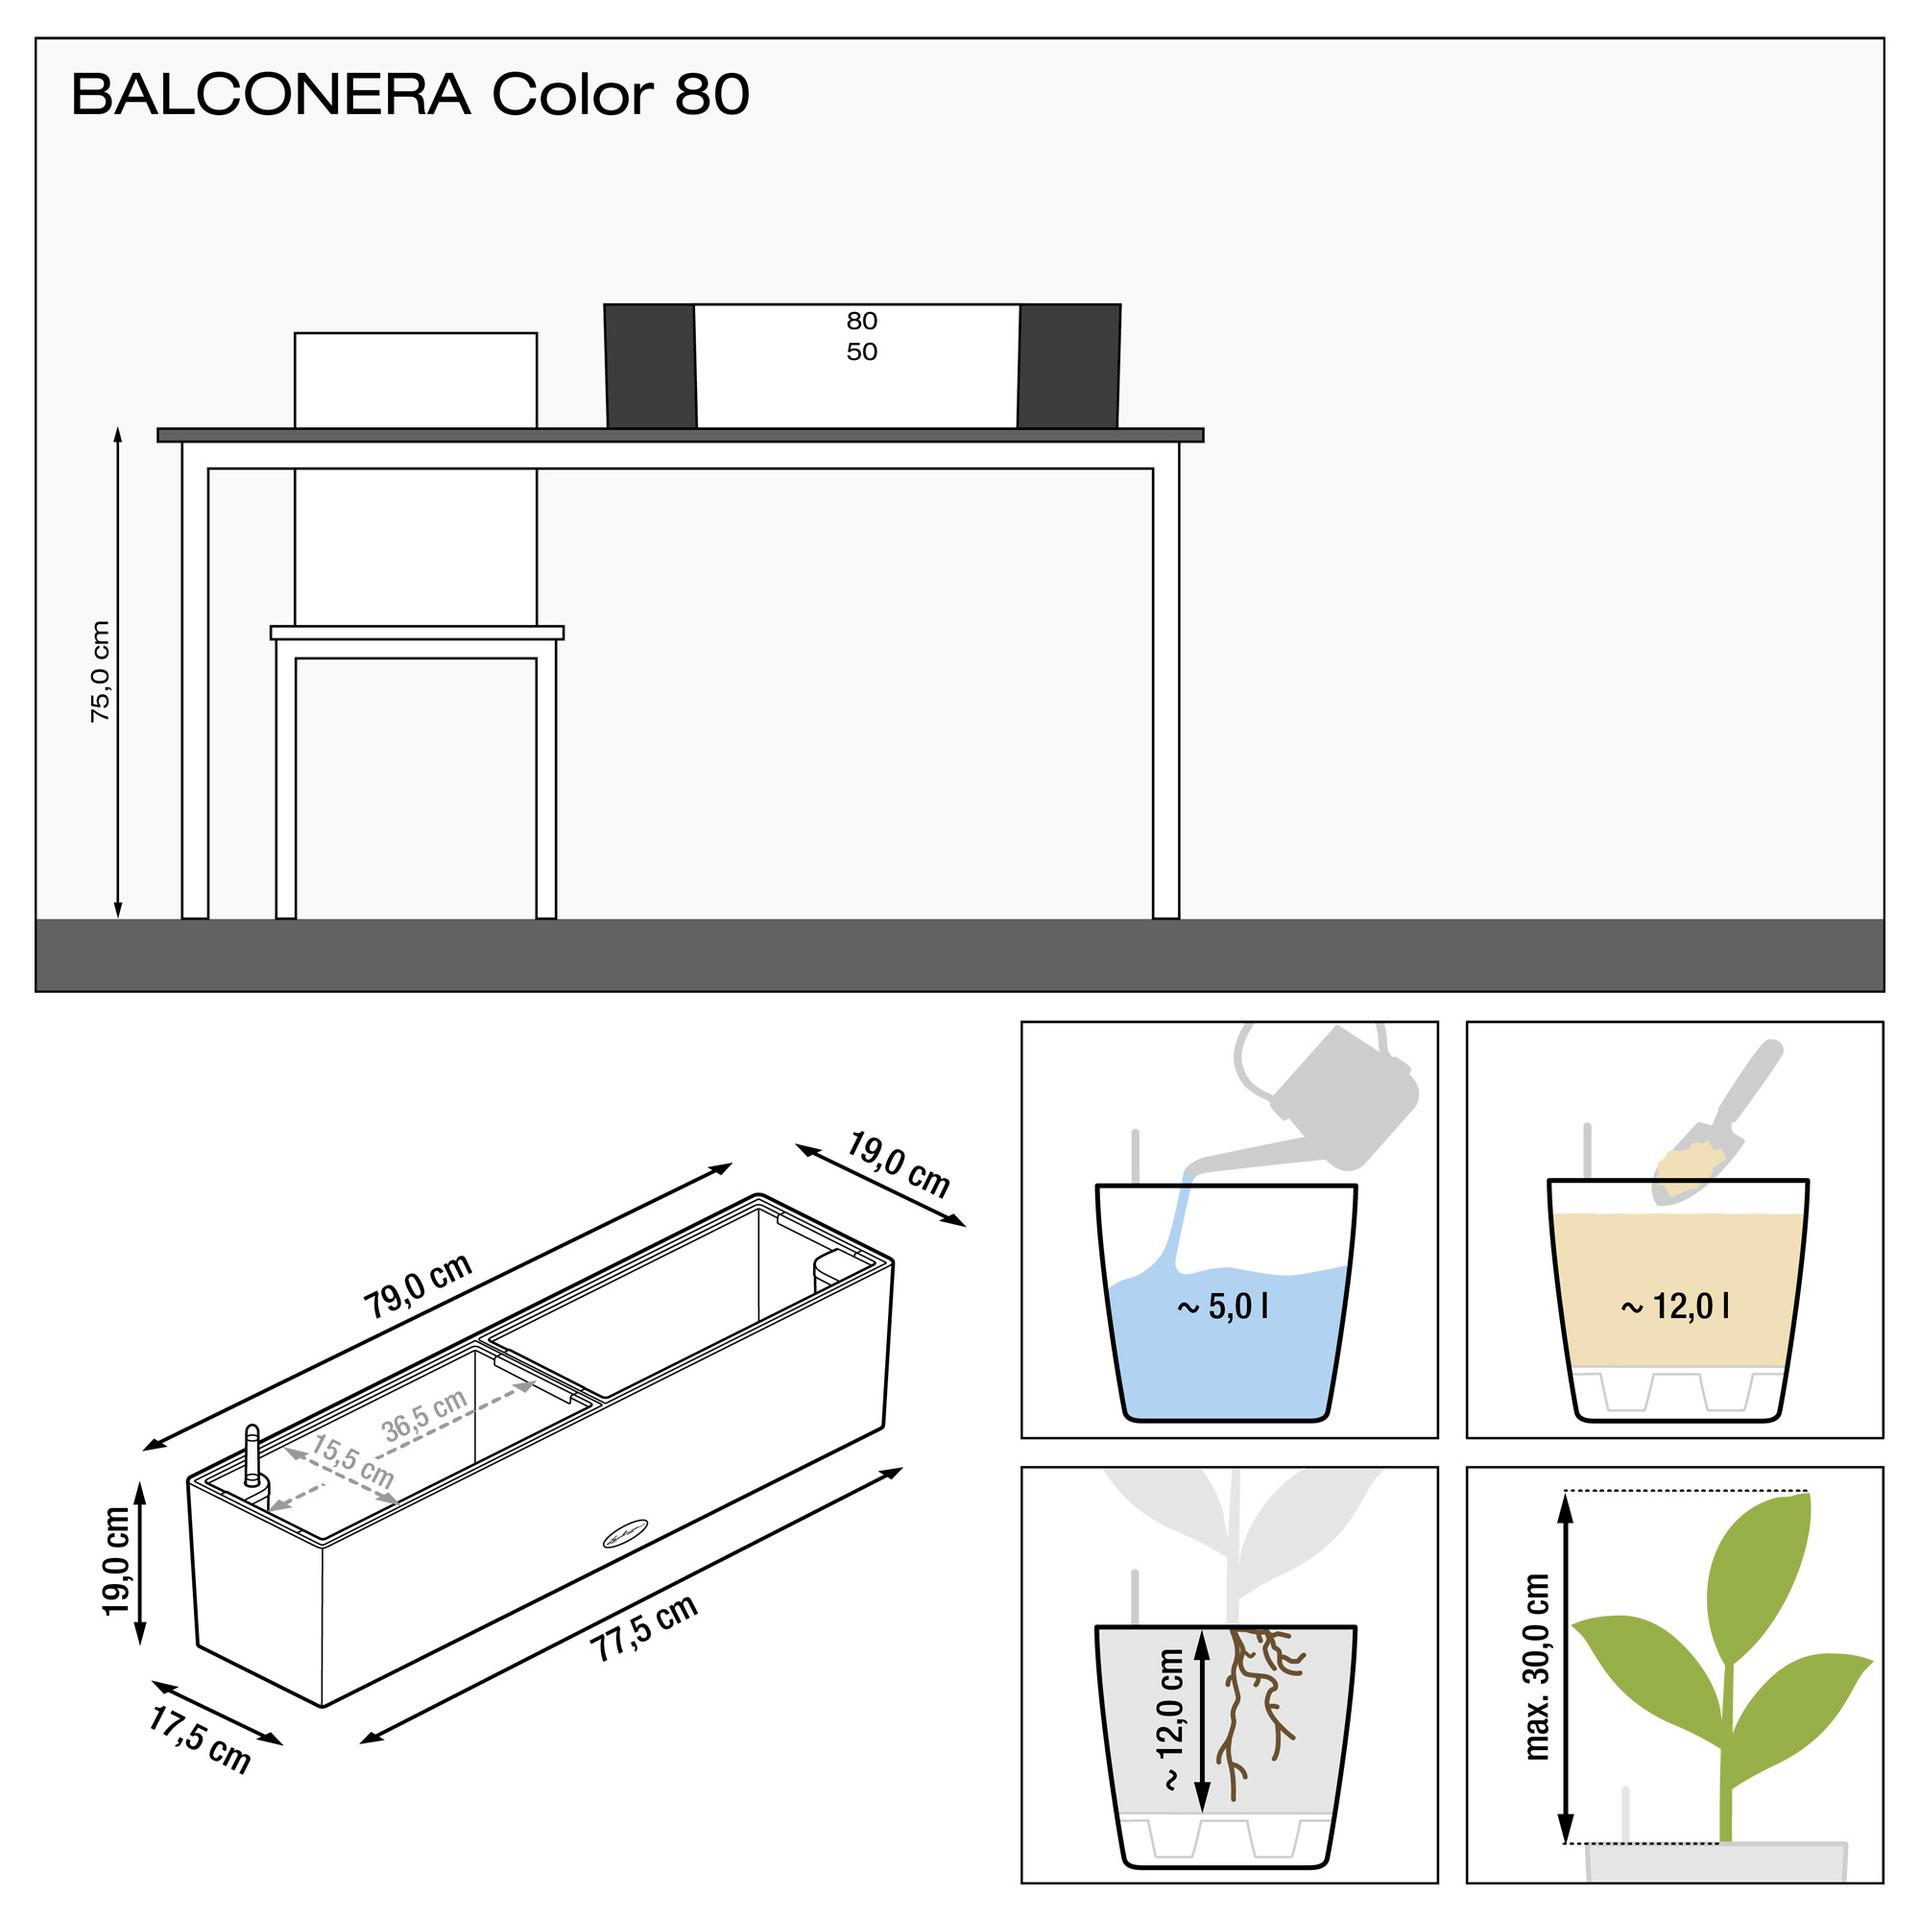 le_balconera-color80_product_addi_nz